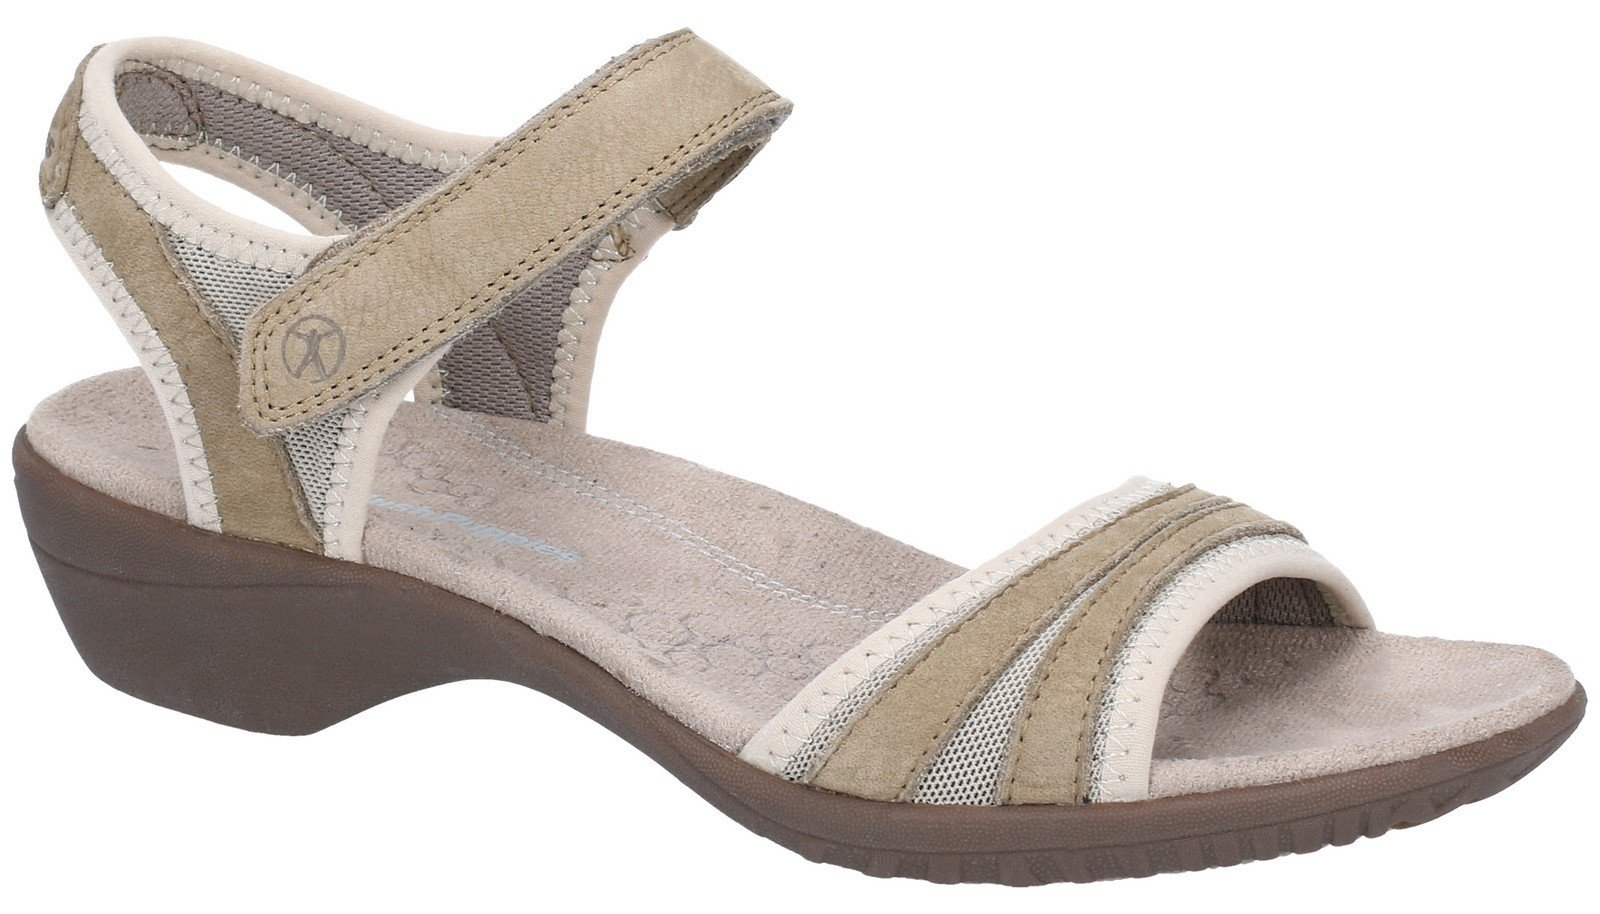 Hush Puppies Women's Athos Touch Fasten Sandal Various Colours 28386 - Taupe 3